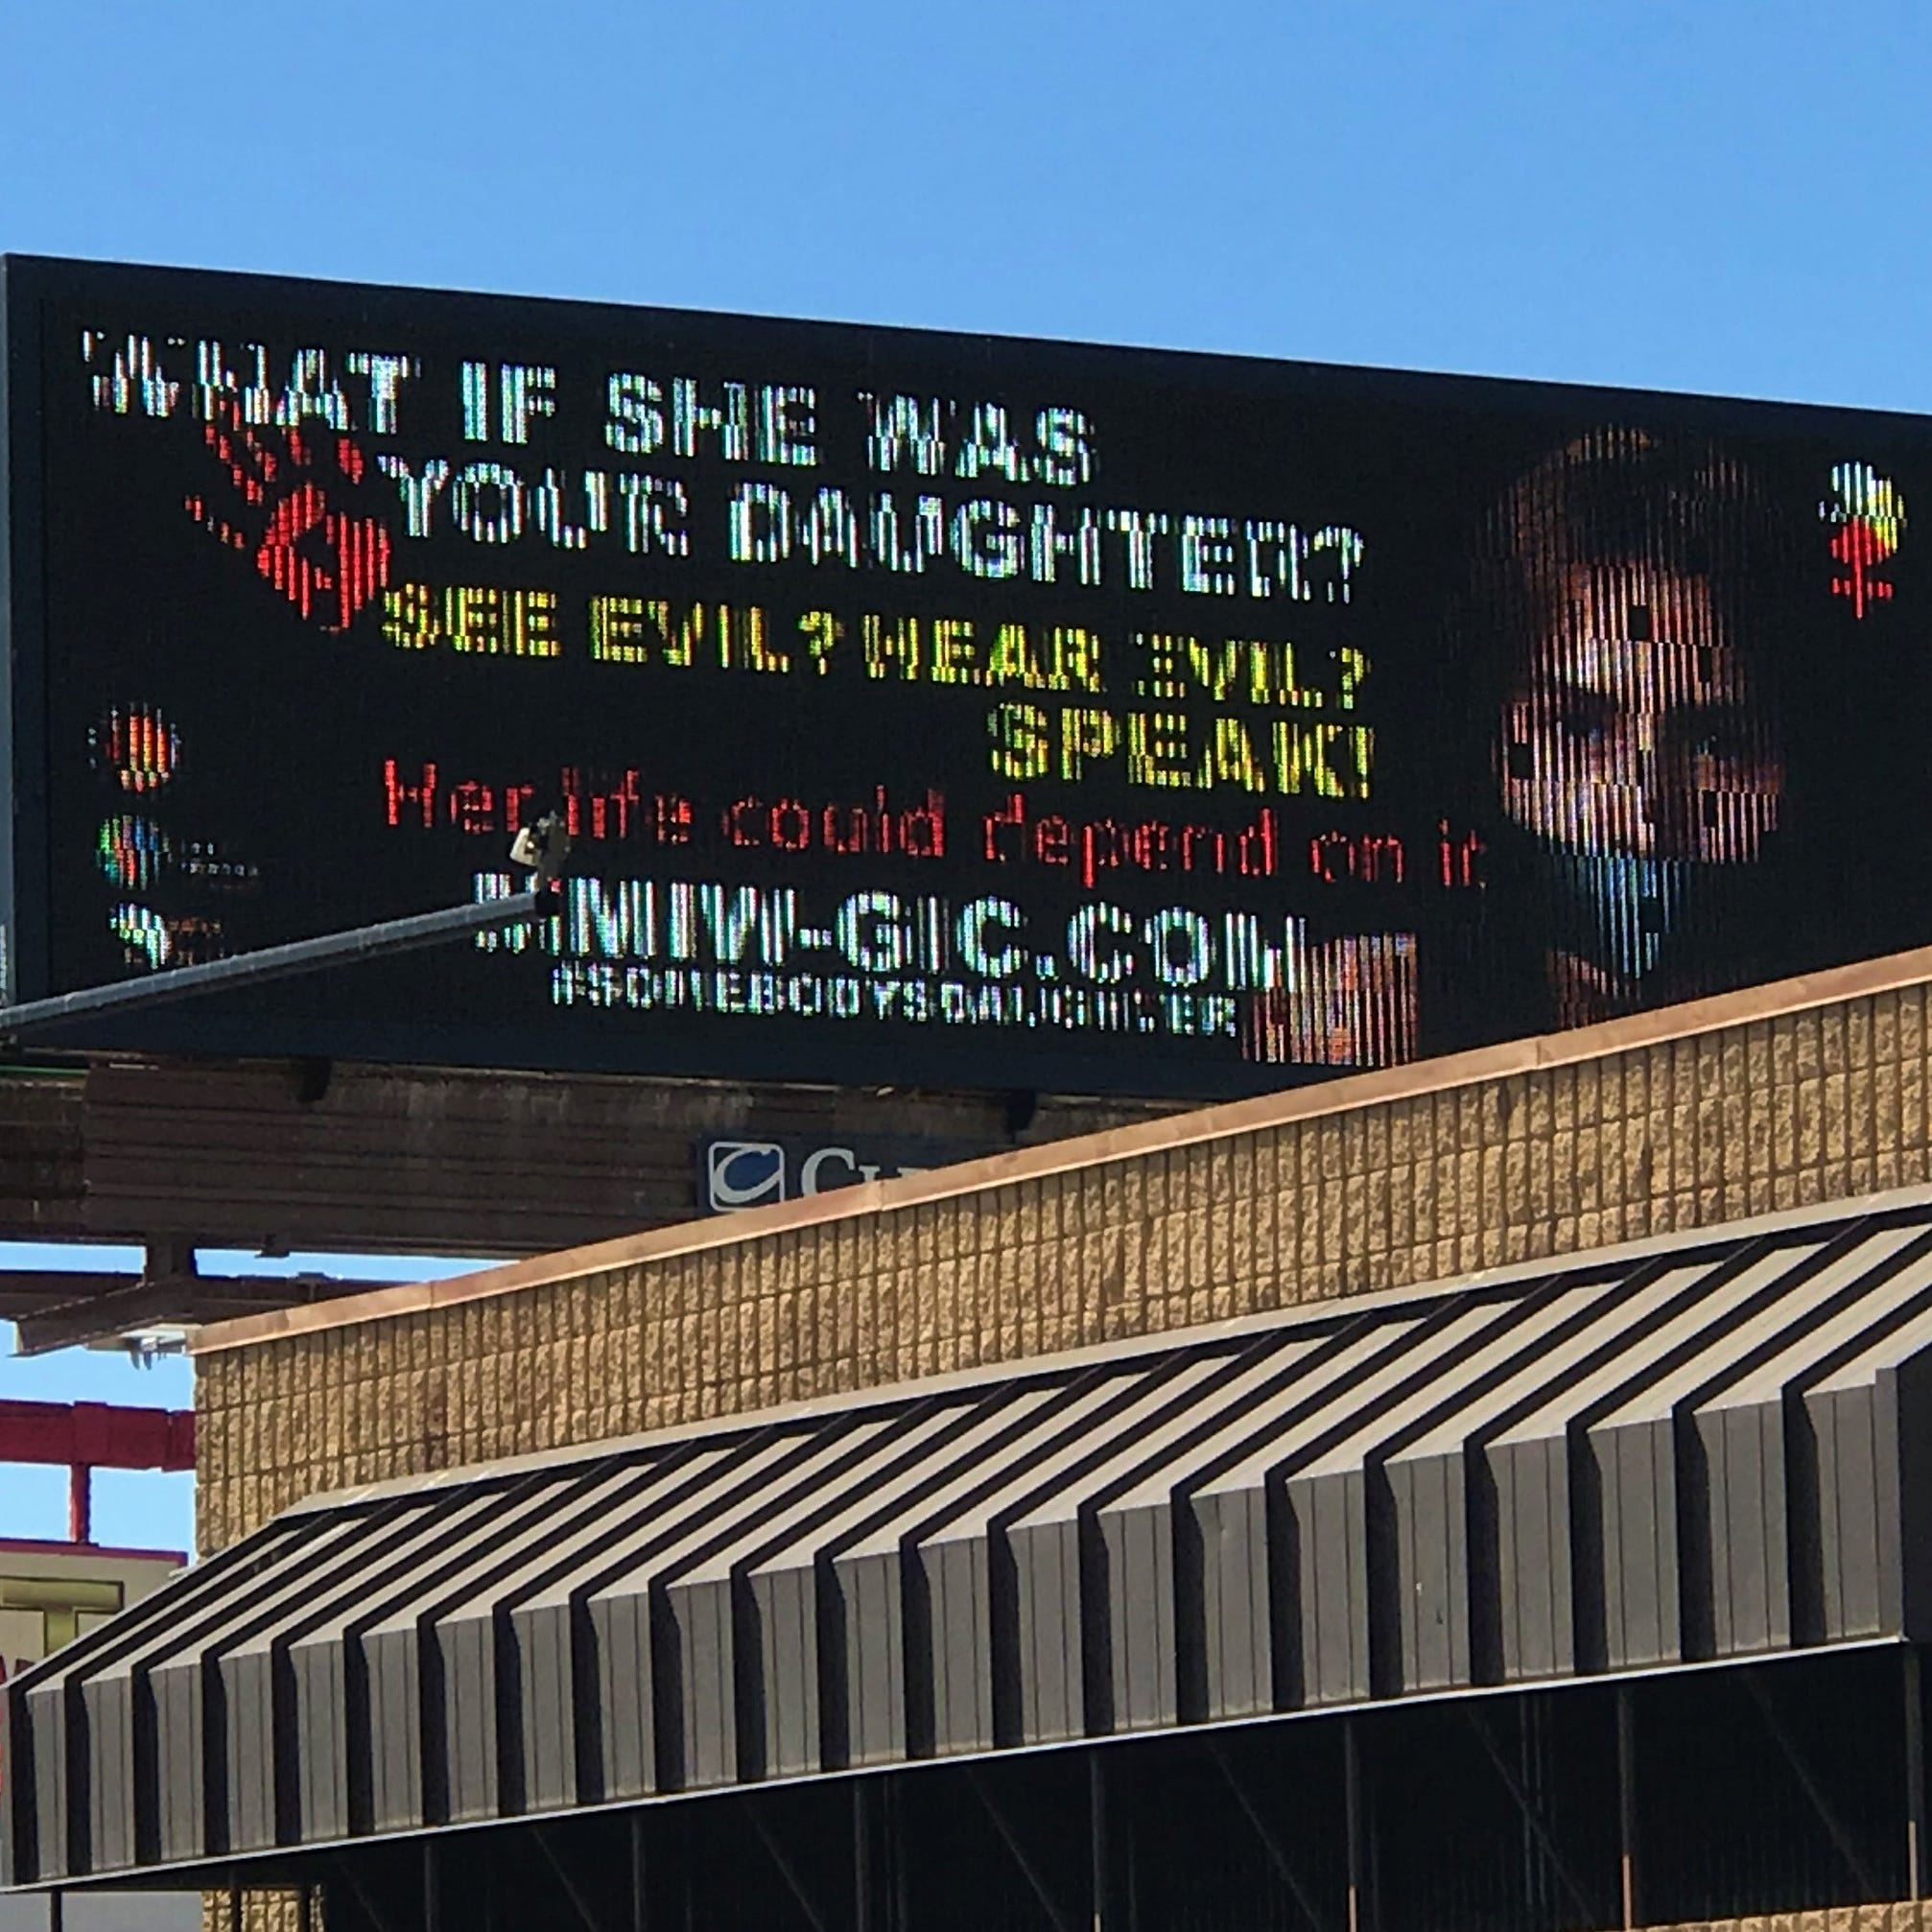 Billboard campaign comes to Arizona with strong message on missing, murdered Indigenous women